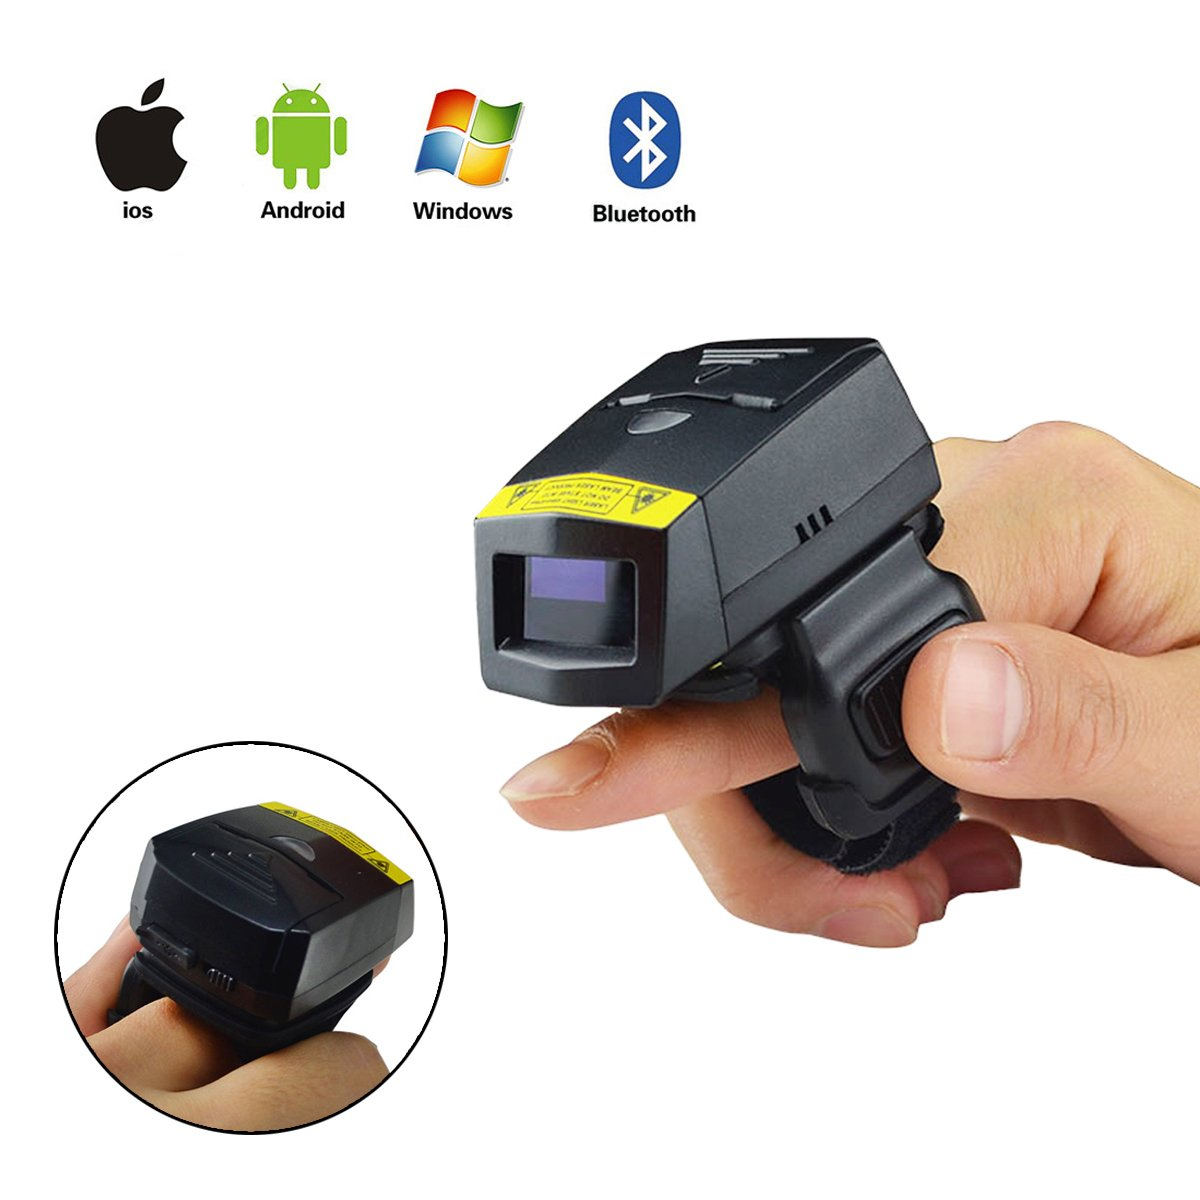 Bluetooth Barcode Scanner, POSUNITECH Barcode Reader Wireless 1D Wearable Ring-style Portable Mini FS01 Support IOS Android Windows by POSUNITECH